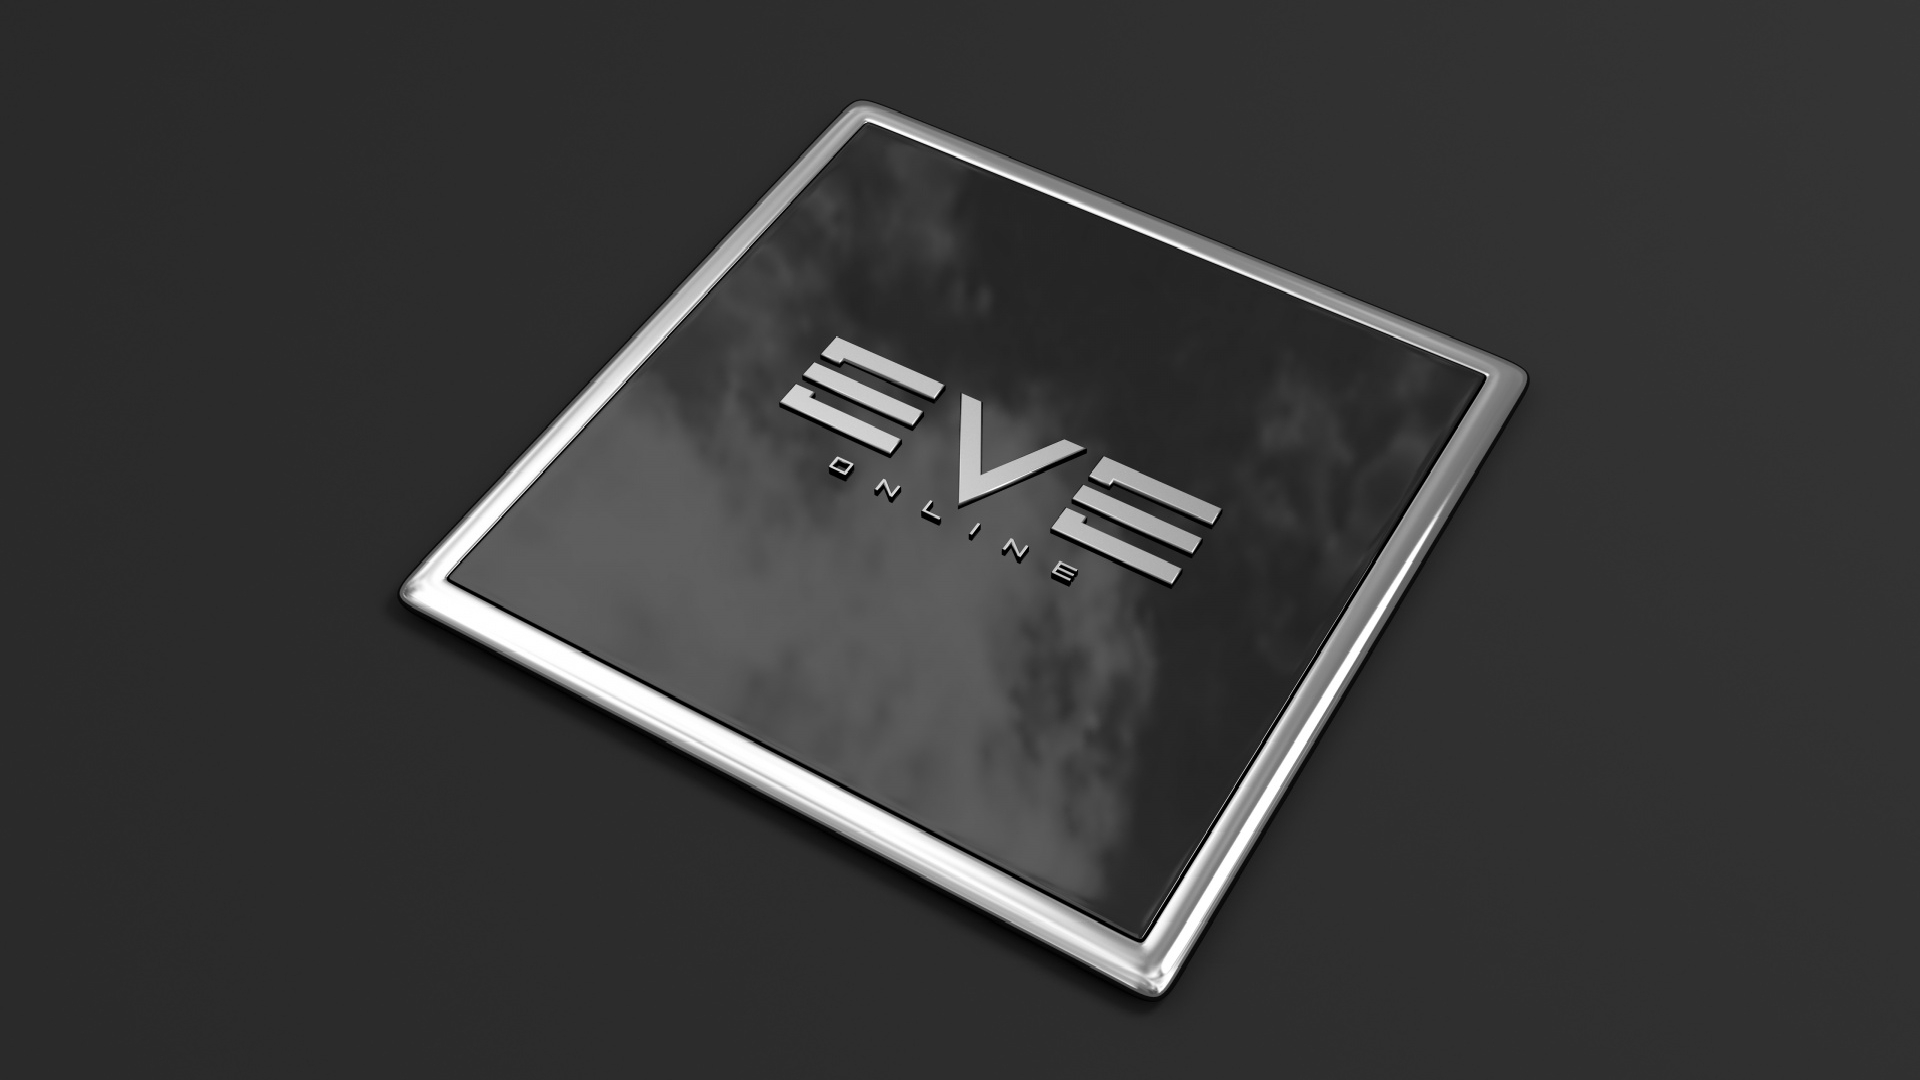 design,evening,space,logo,stake,metal,eve,eve online,gage,game,punt,biz,background,online,eventide,games,silver,black